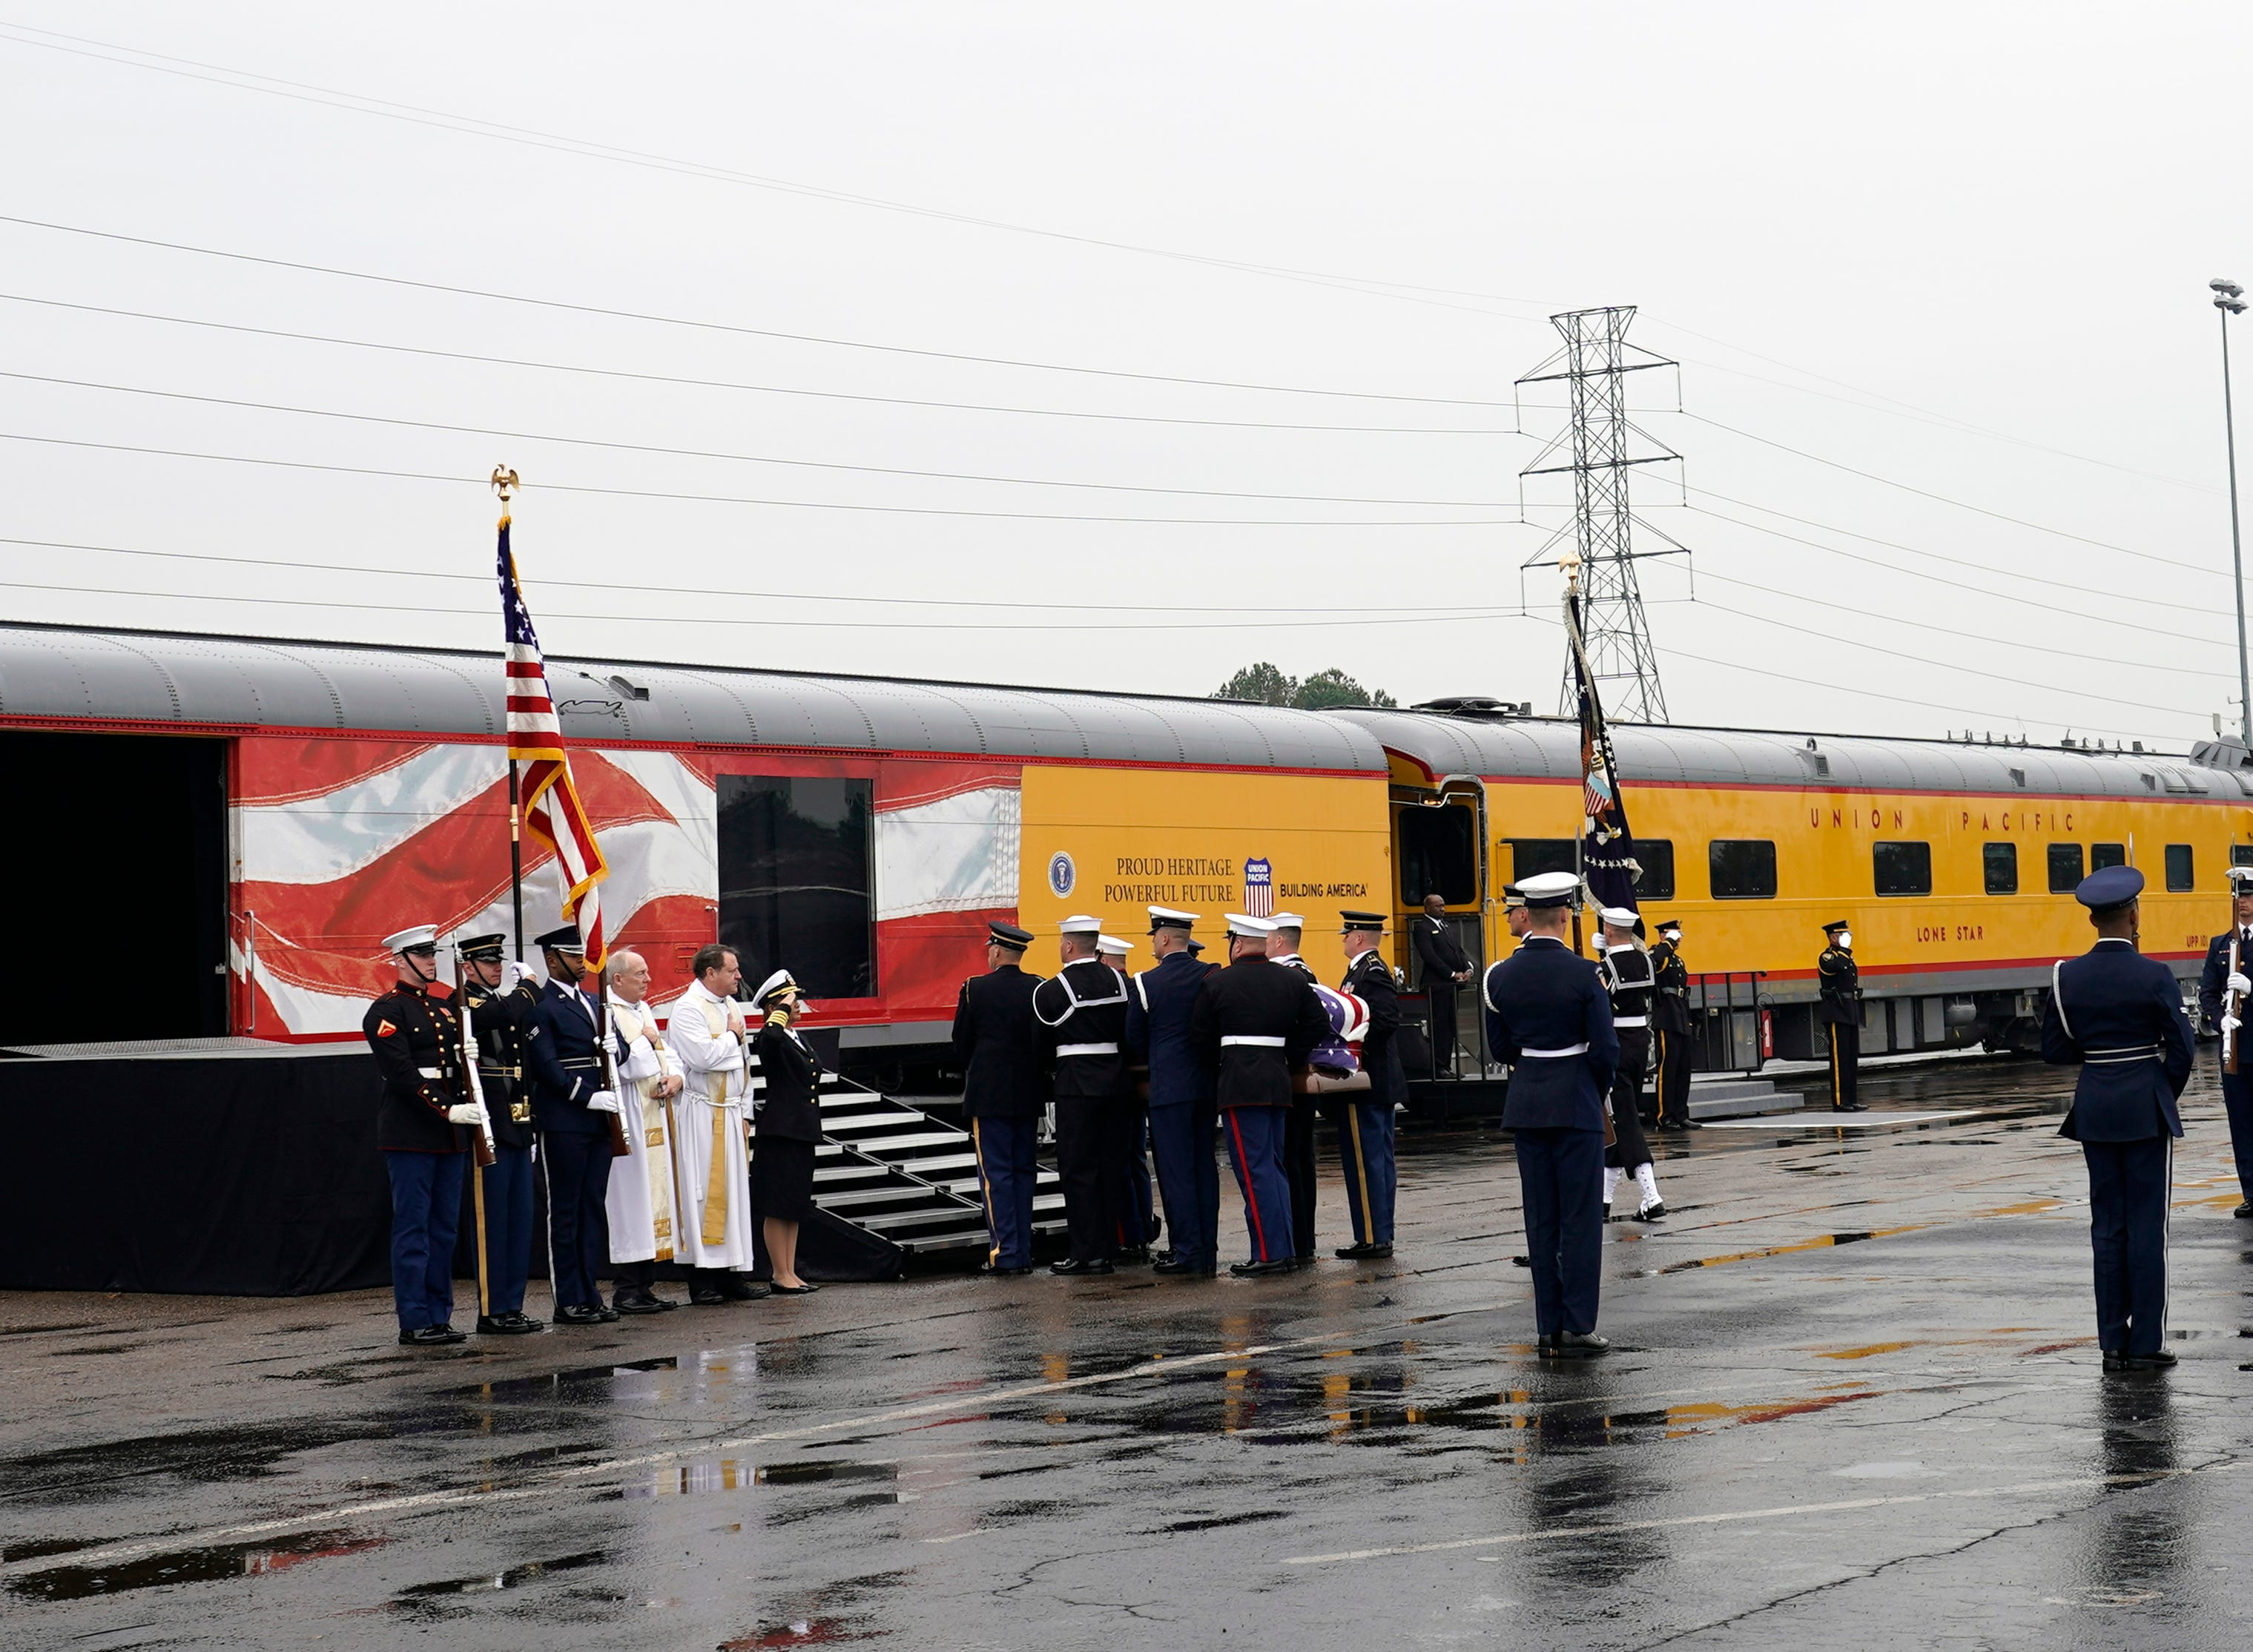 The flag-draped casket of former President George H.W. Bush is carried by a joint services military honor guard on Dec. 6, 2018 in Houston, Texas. President Bush will be buried at his final resting place at the George H.W. Bush Presidential Library at Texas A&M University in College Station, Texas. A WWII combat veteran, Bush served as a member of Congress from Texas, ambassador to the United Nations, director of the CIA, vice president and 41st president of the United States.